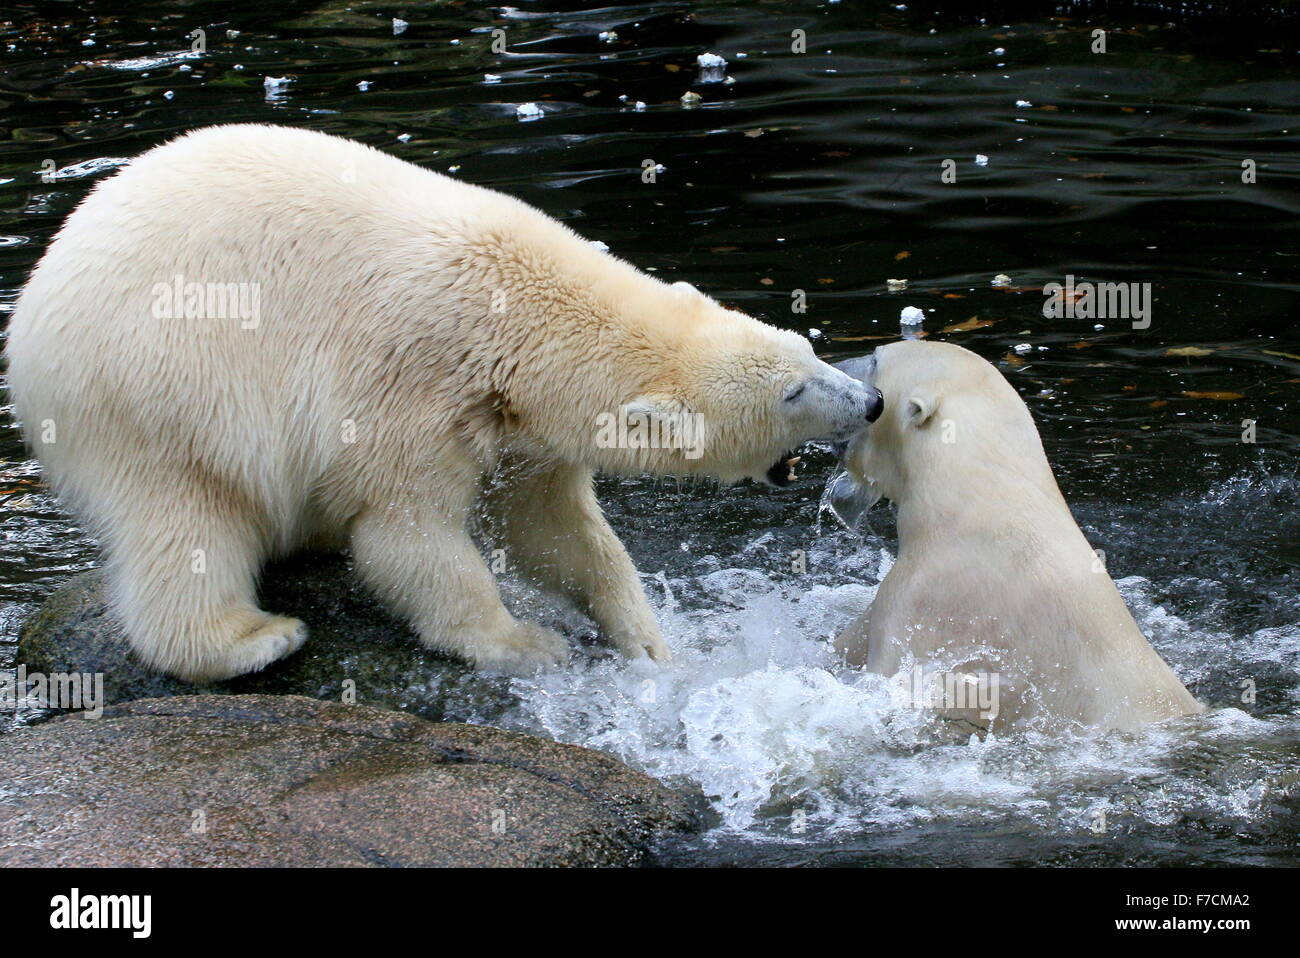 Two feisty female Polar bears (Ursus maritimus) fighting each other on shore, one biting, other lunging upward from - Stock Image